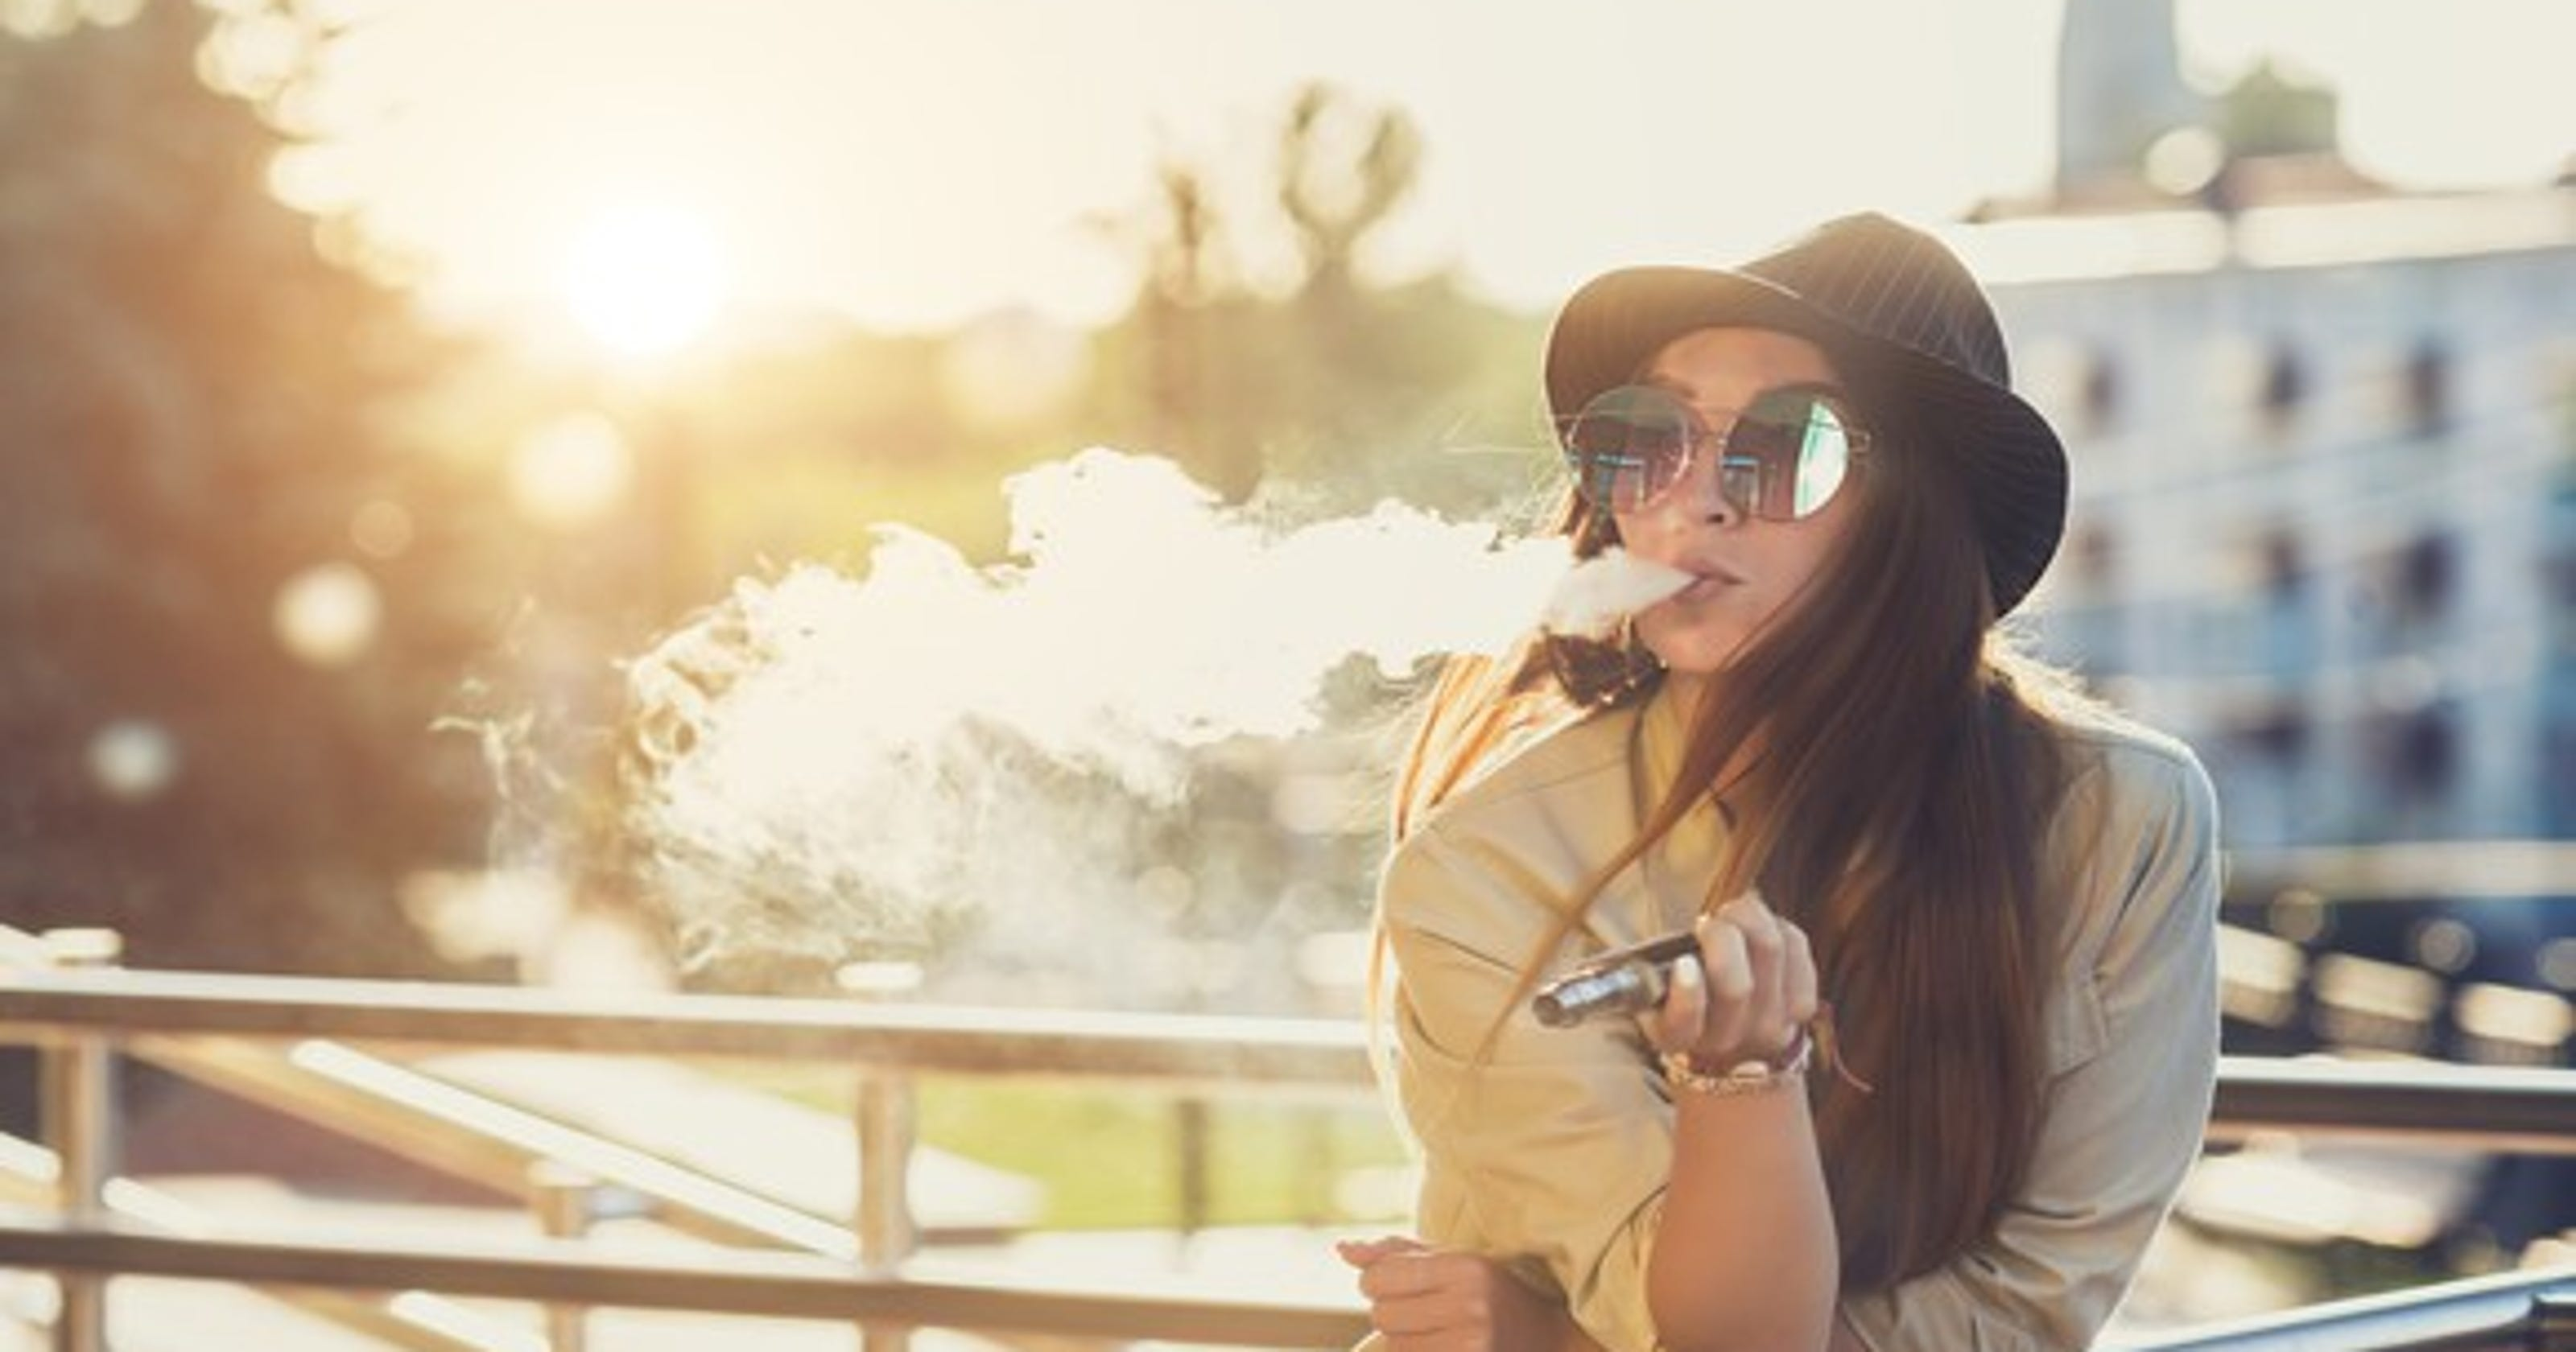 E-cigarettes: Cities not waiting for FDA to fight teen